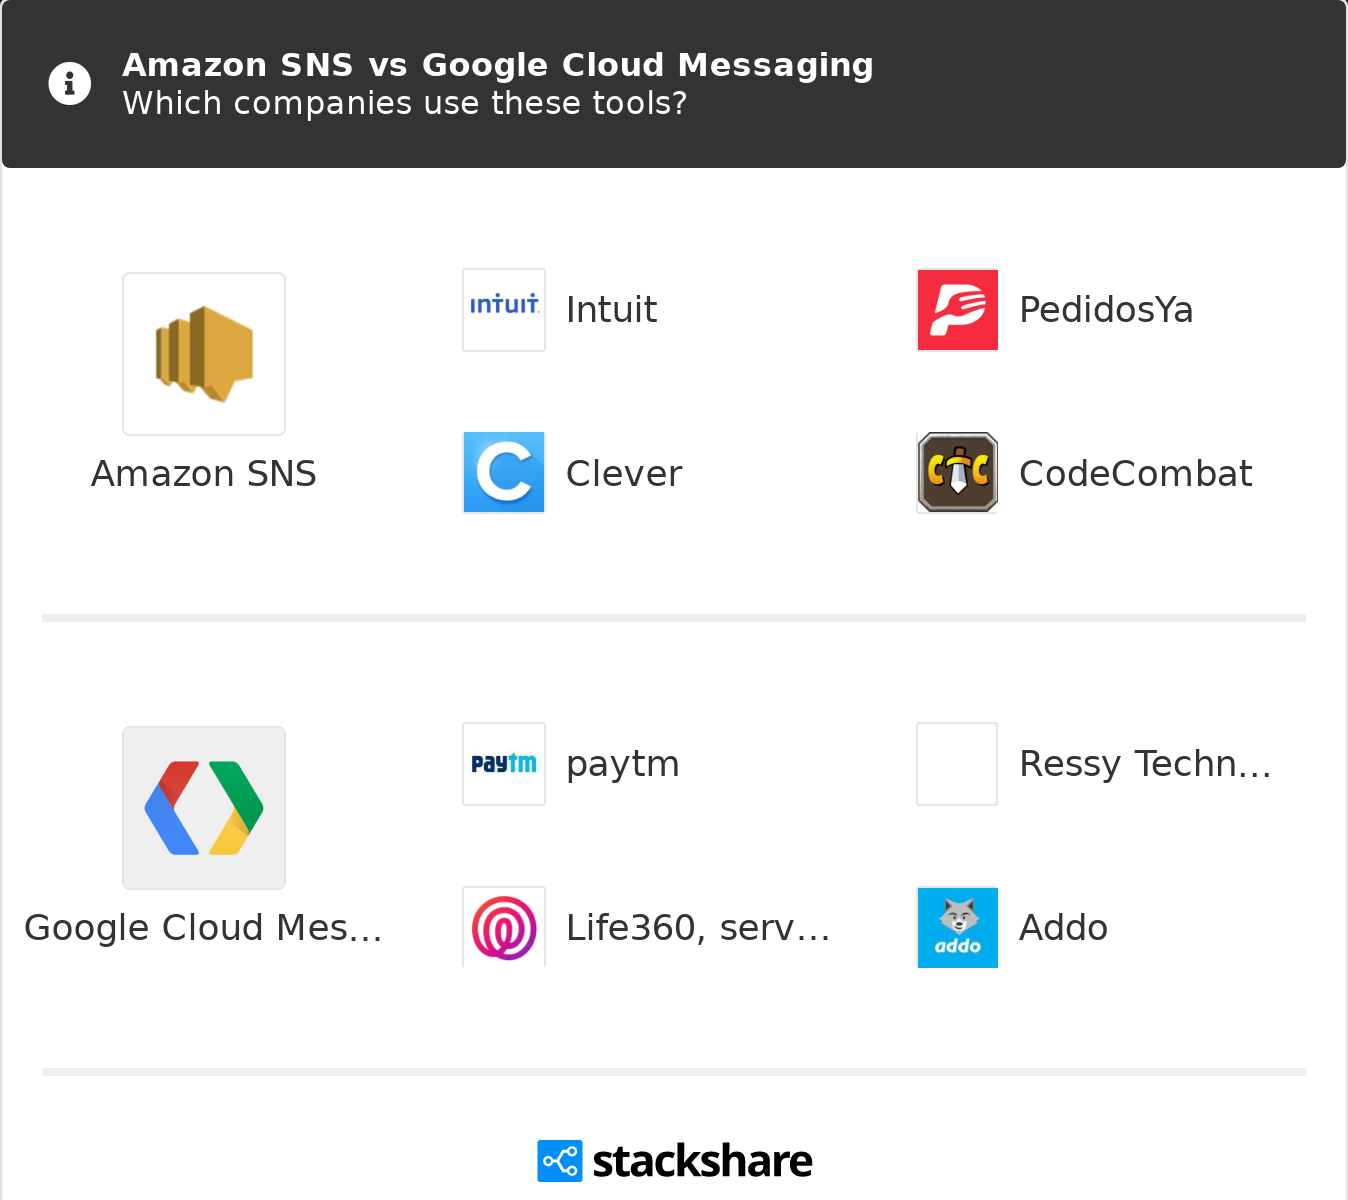 Amazon SNS vs Google Cloud Messaging | What are the differences?